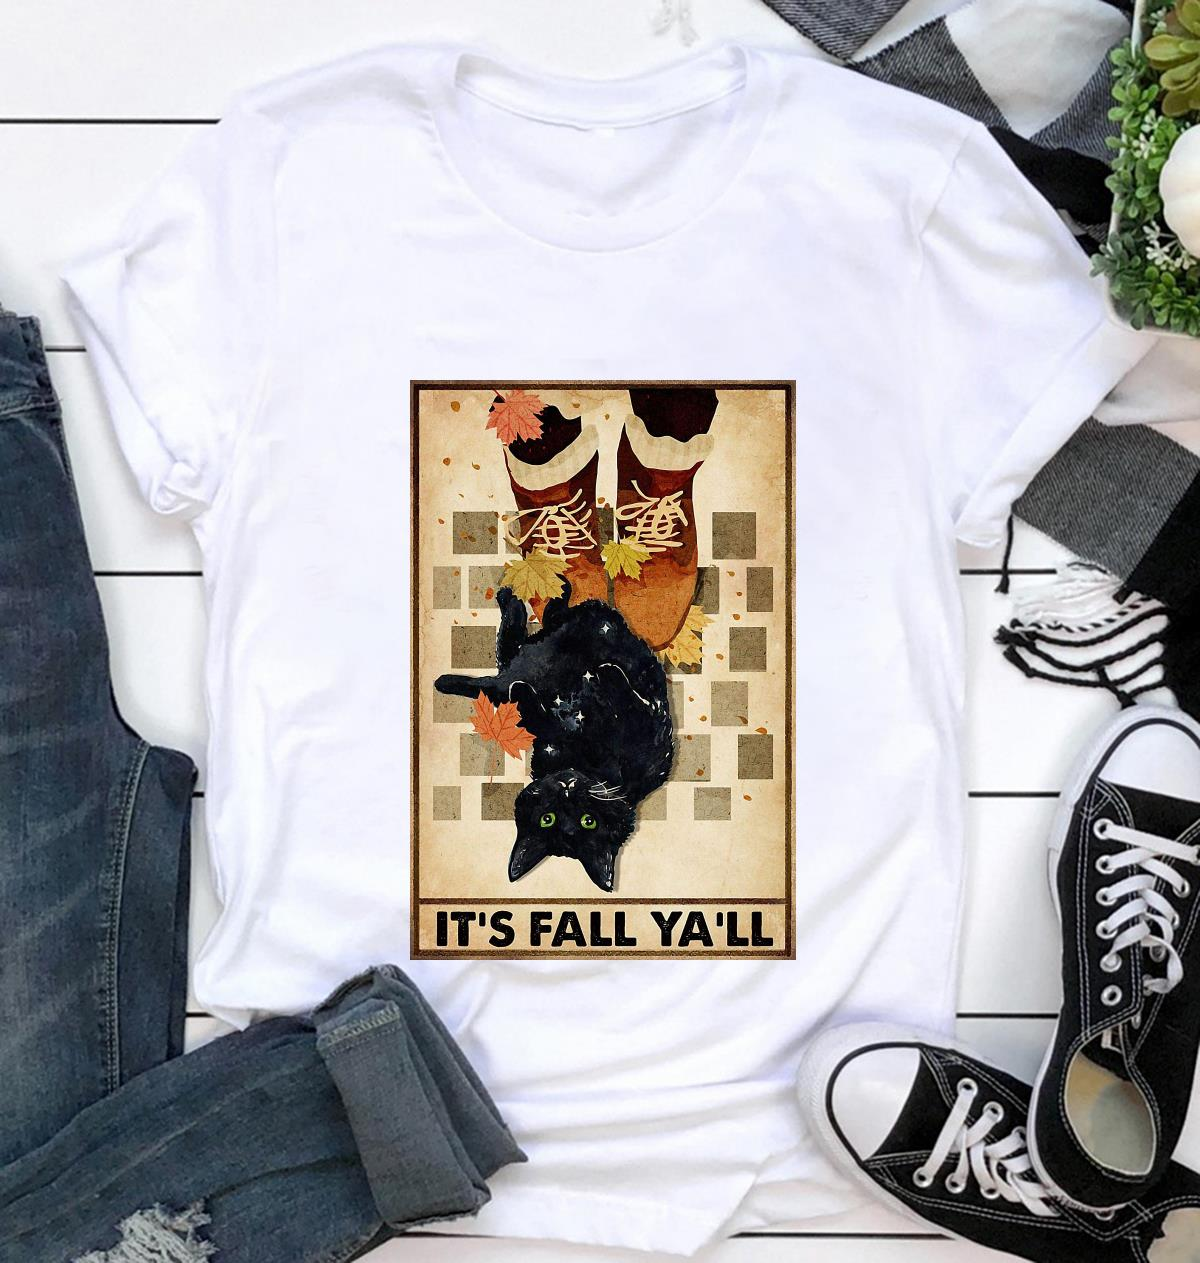 Black cat its fall y'all poster t-shirt